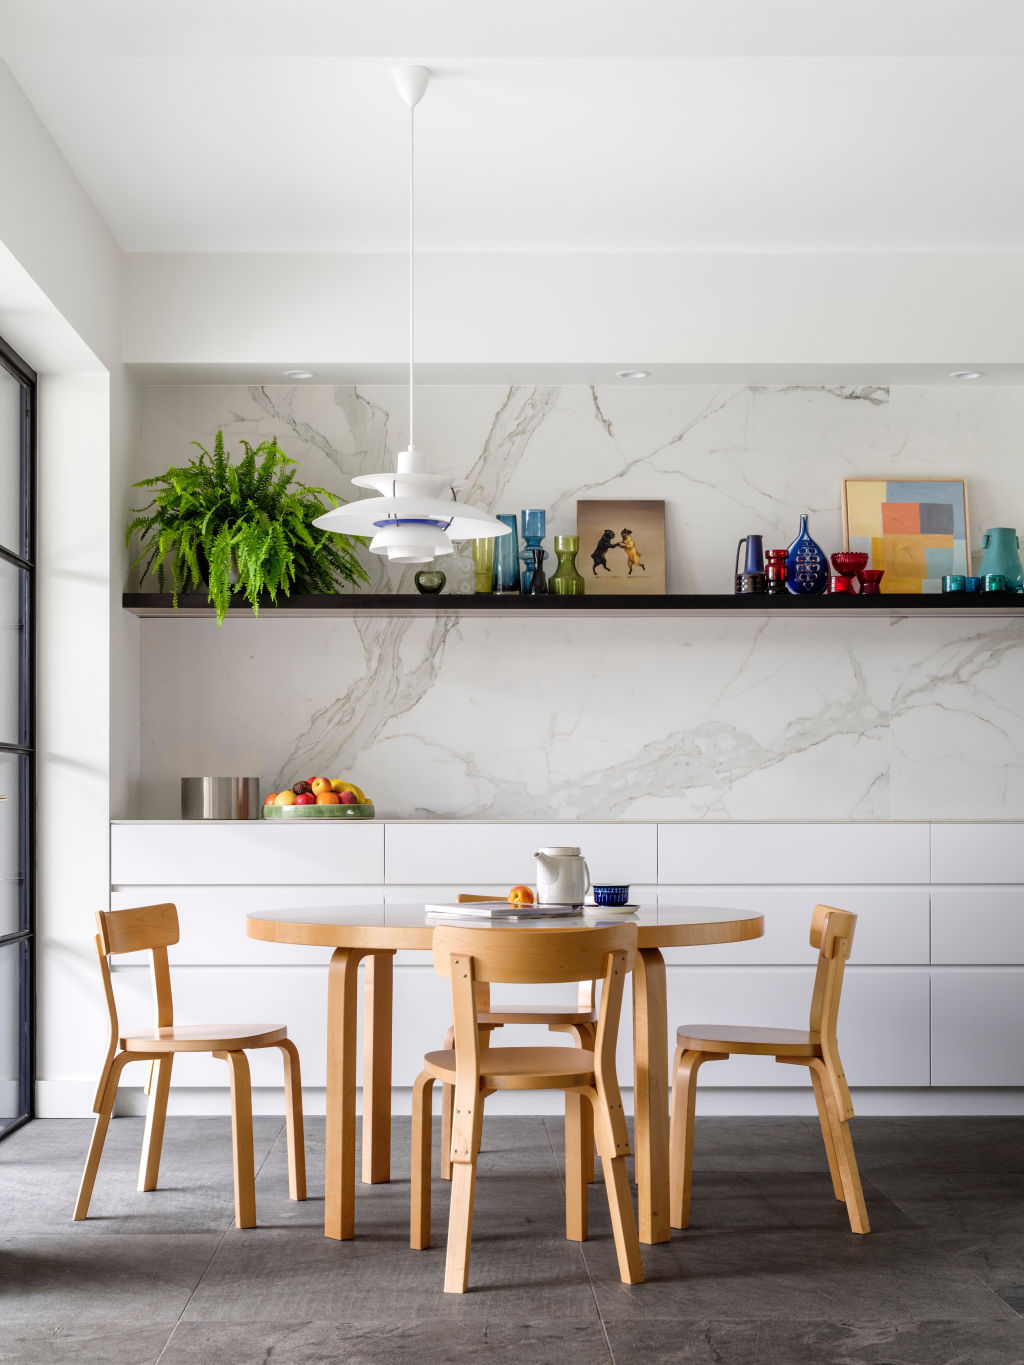 Woollahra 2 by Anna Carin Design not for reuse